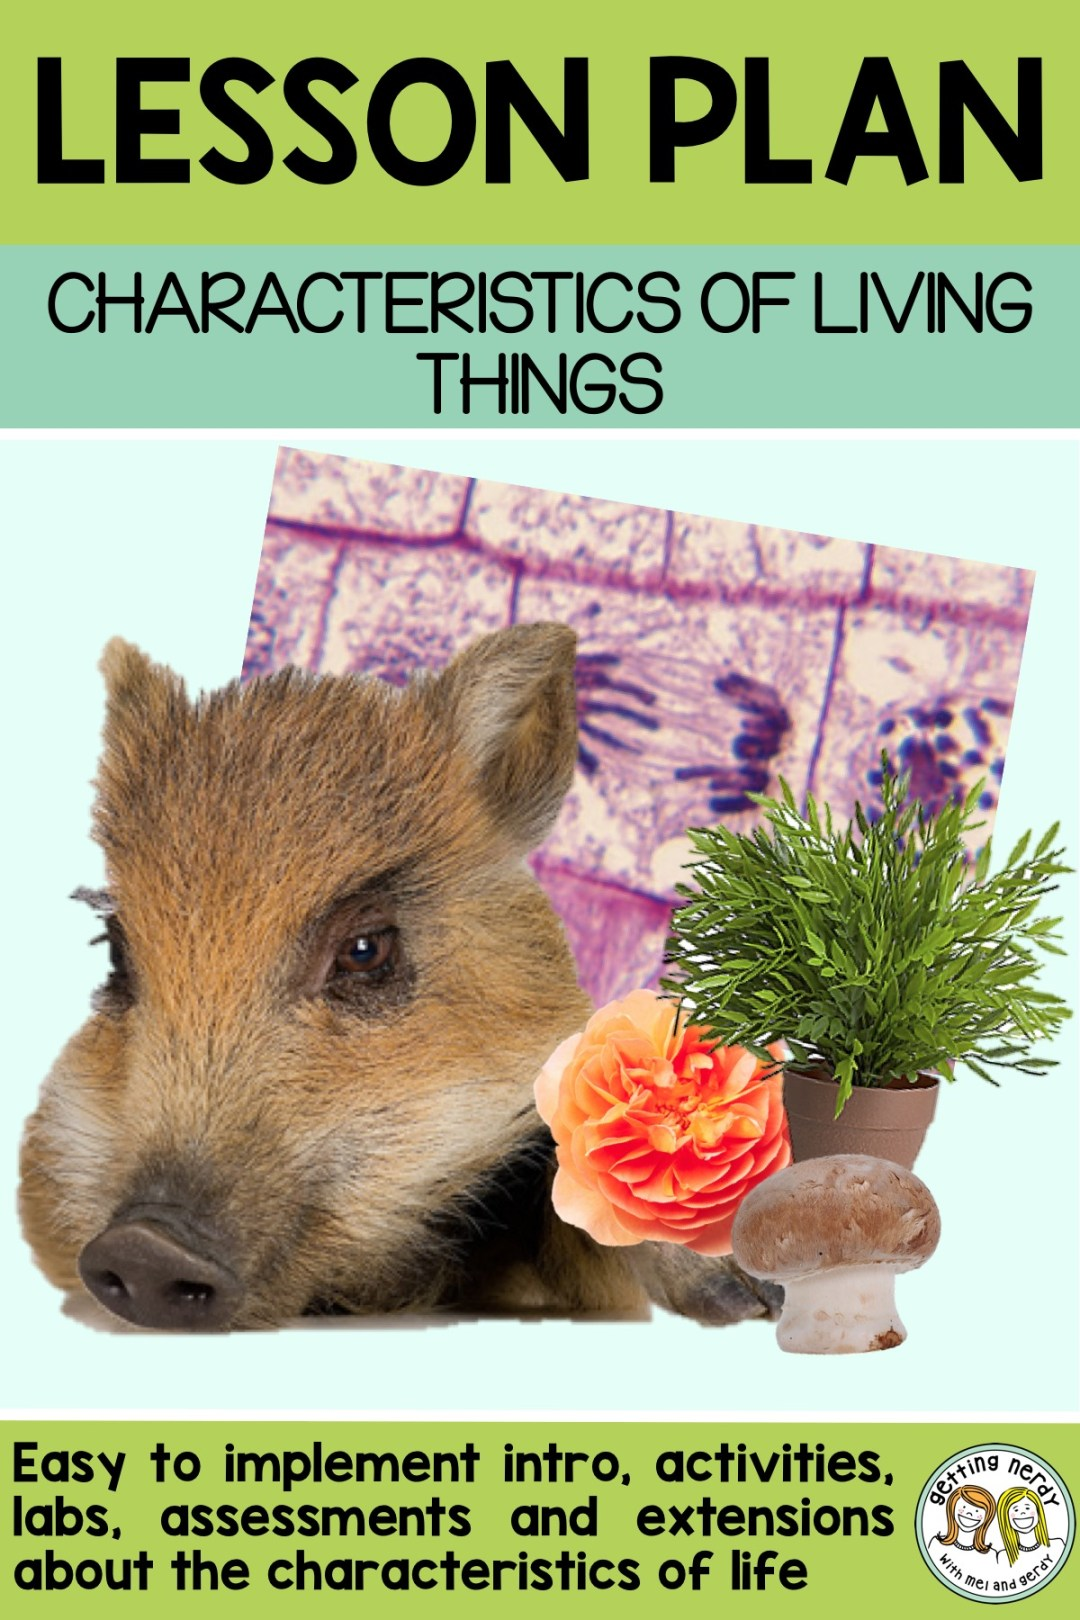 Here are some great ideas to get your kids thinking about the needs and characteristics of living things #gettingnerdyscience #lifescience #characteristicsoflife